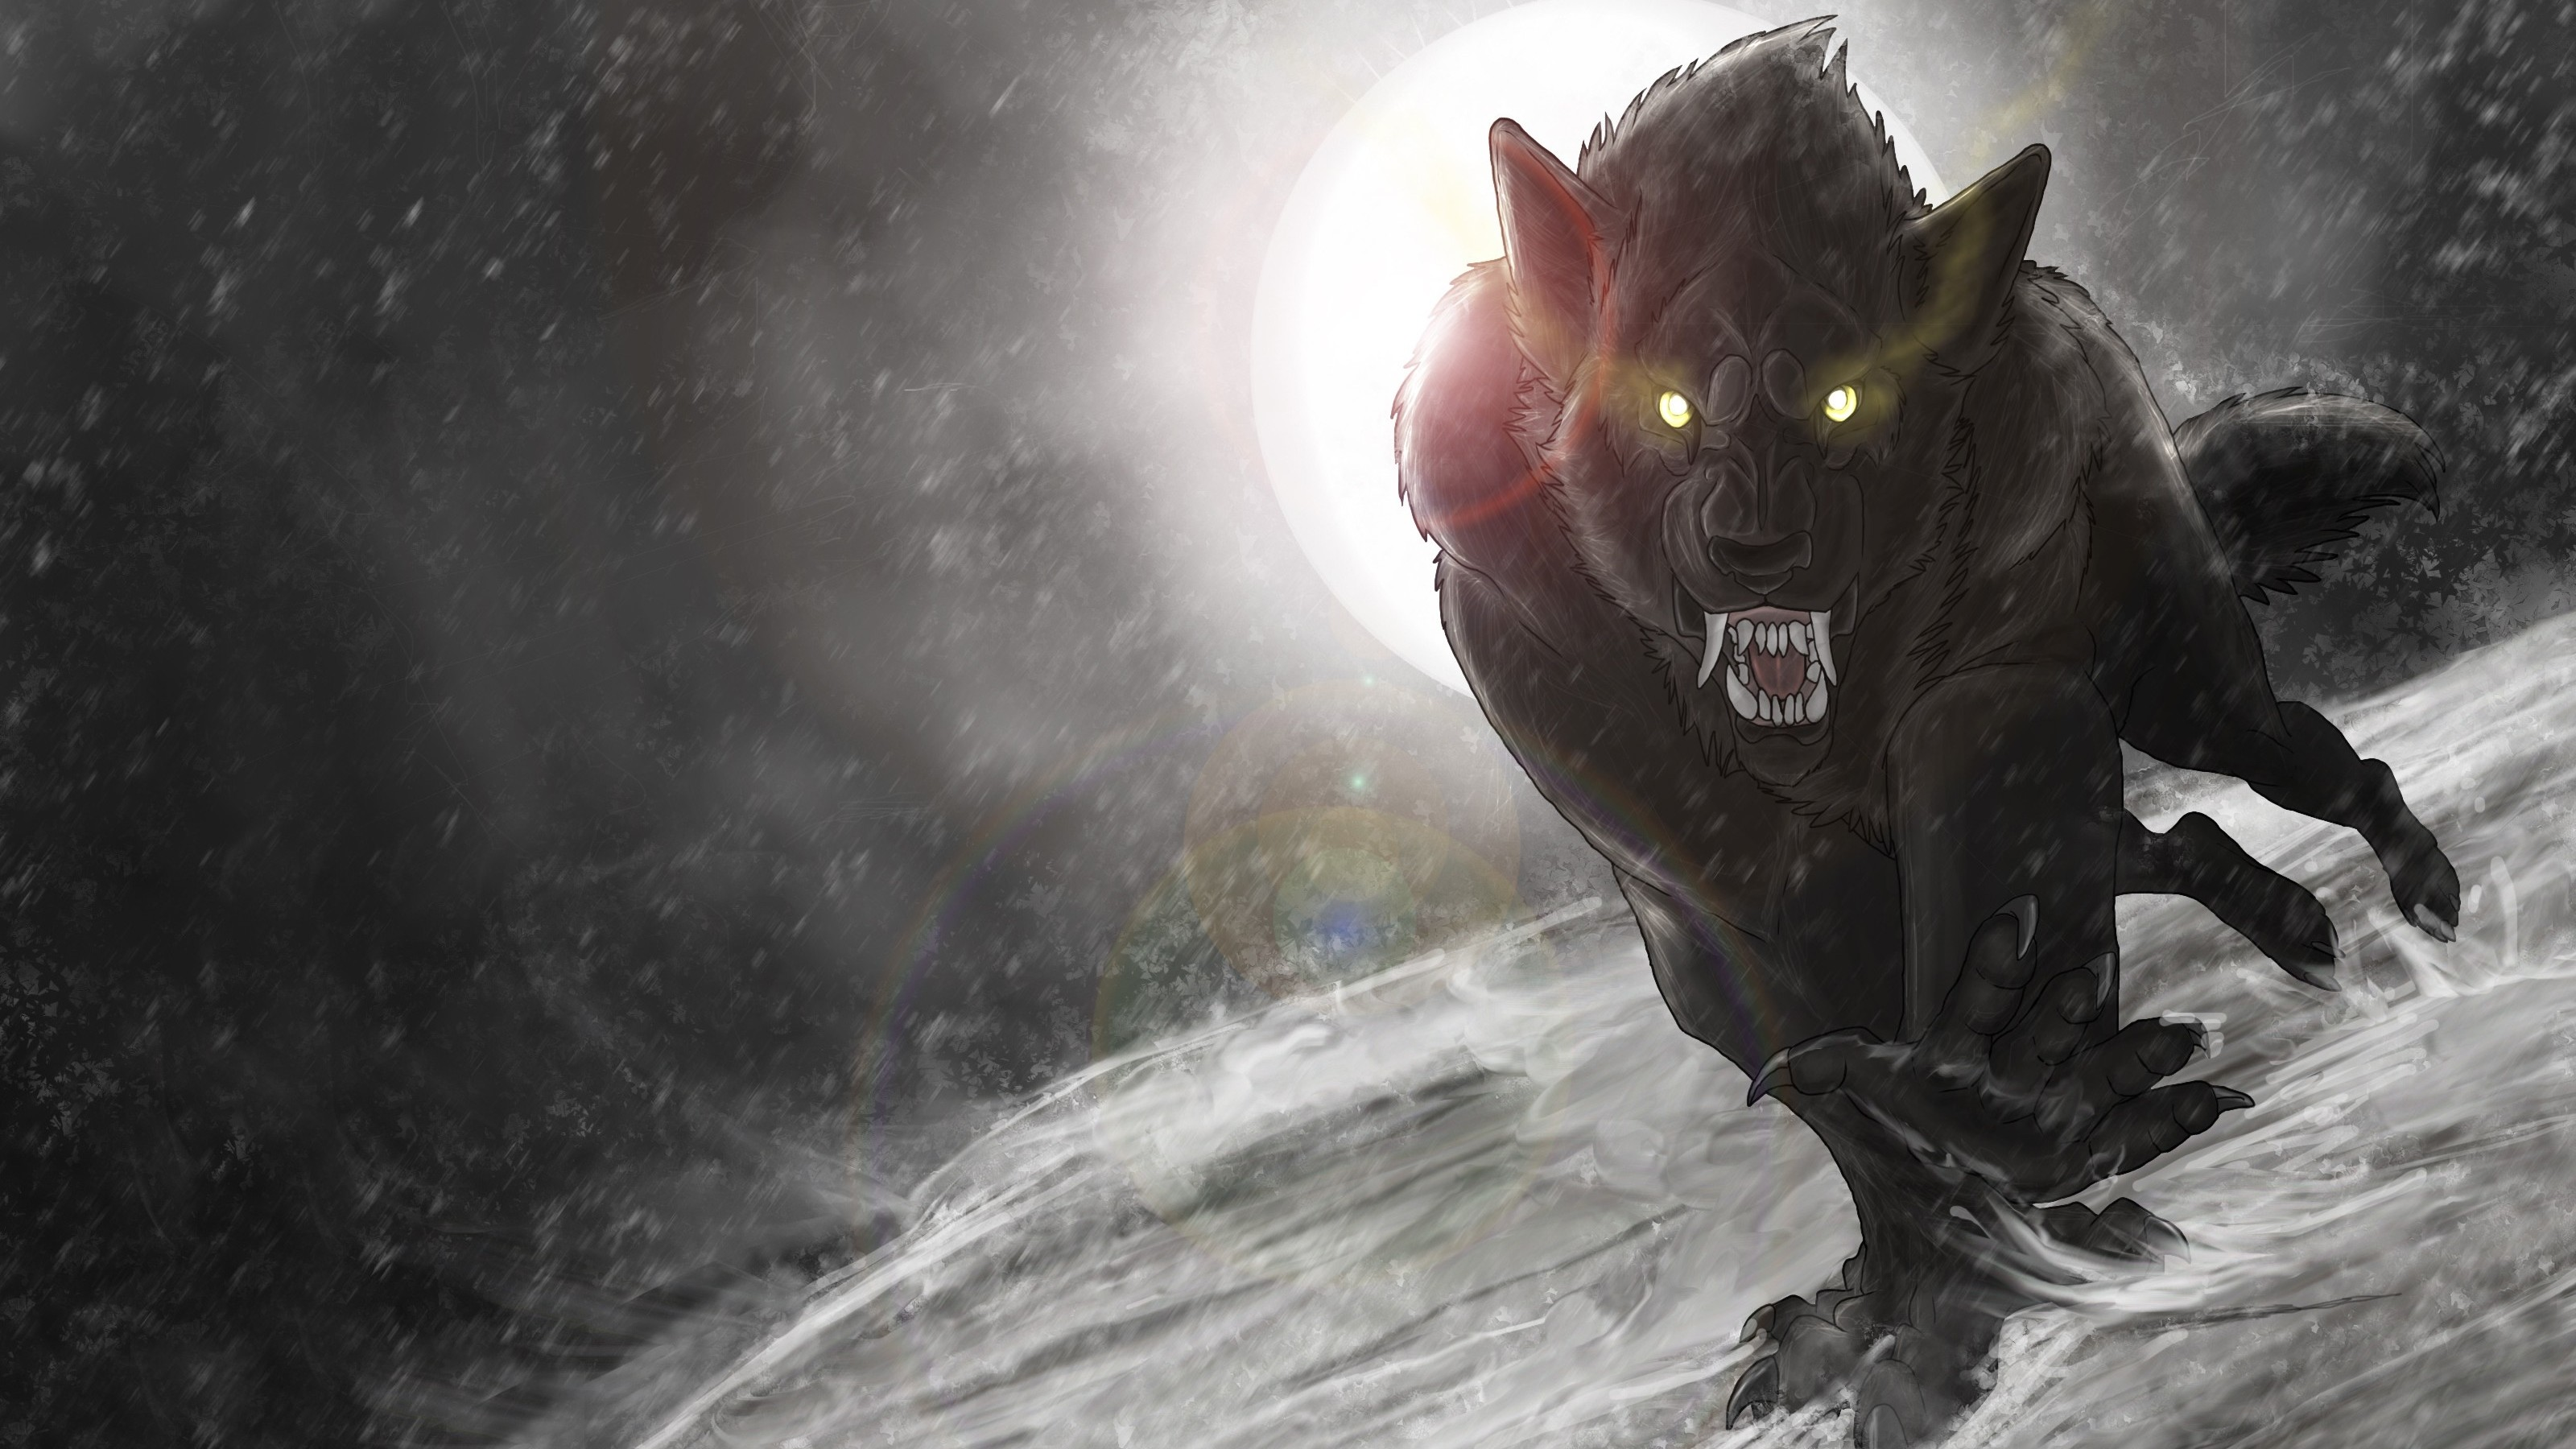 3200x1800 images of werewolves Werewolf HD Wallpaper Background For